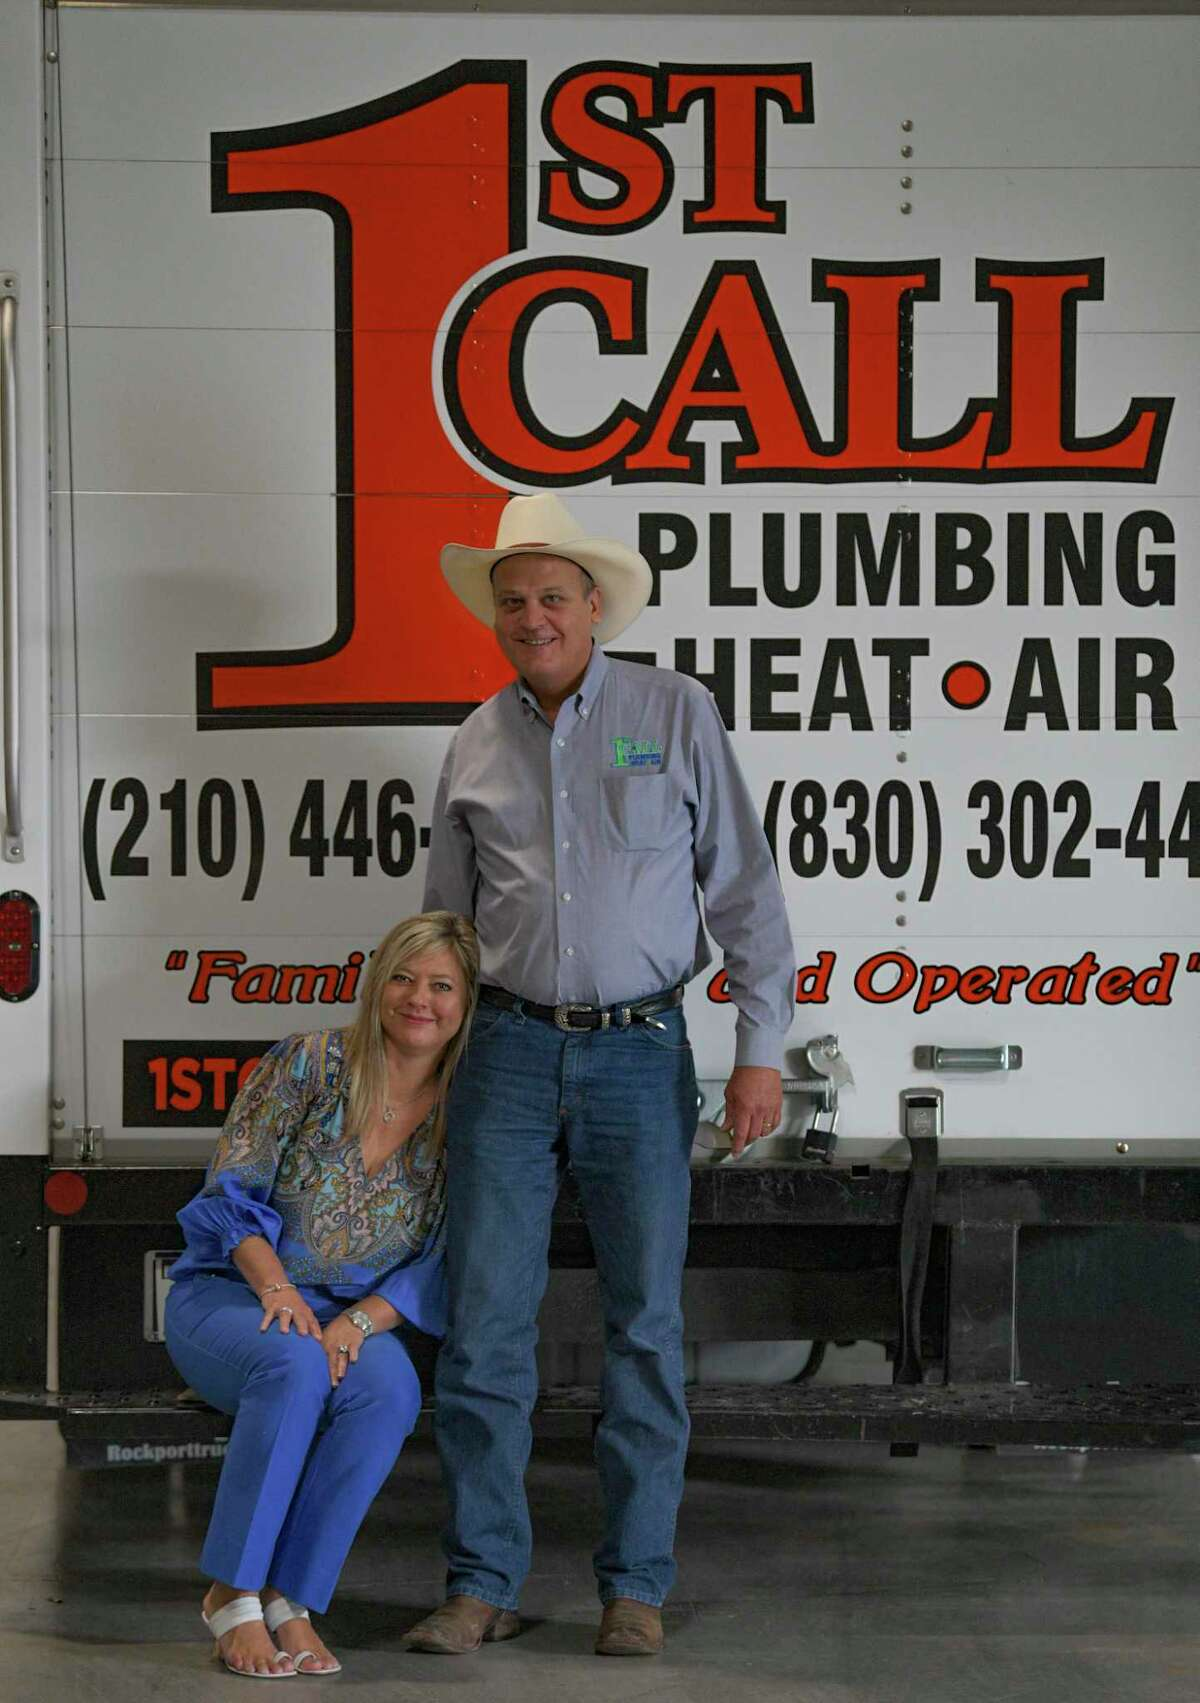 John Aramendia grew restless in retirement after selling the assets of Aramendia Plumbing, Heating & Air. So he and his wife, Anne, started 1st Call Plumbing, Heating & Air.